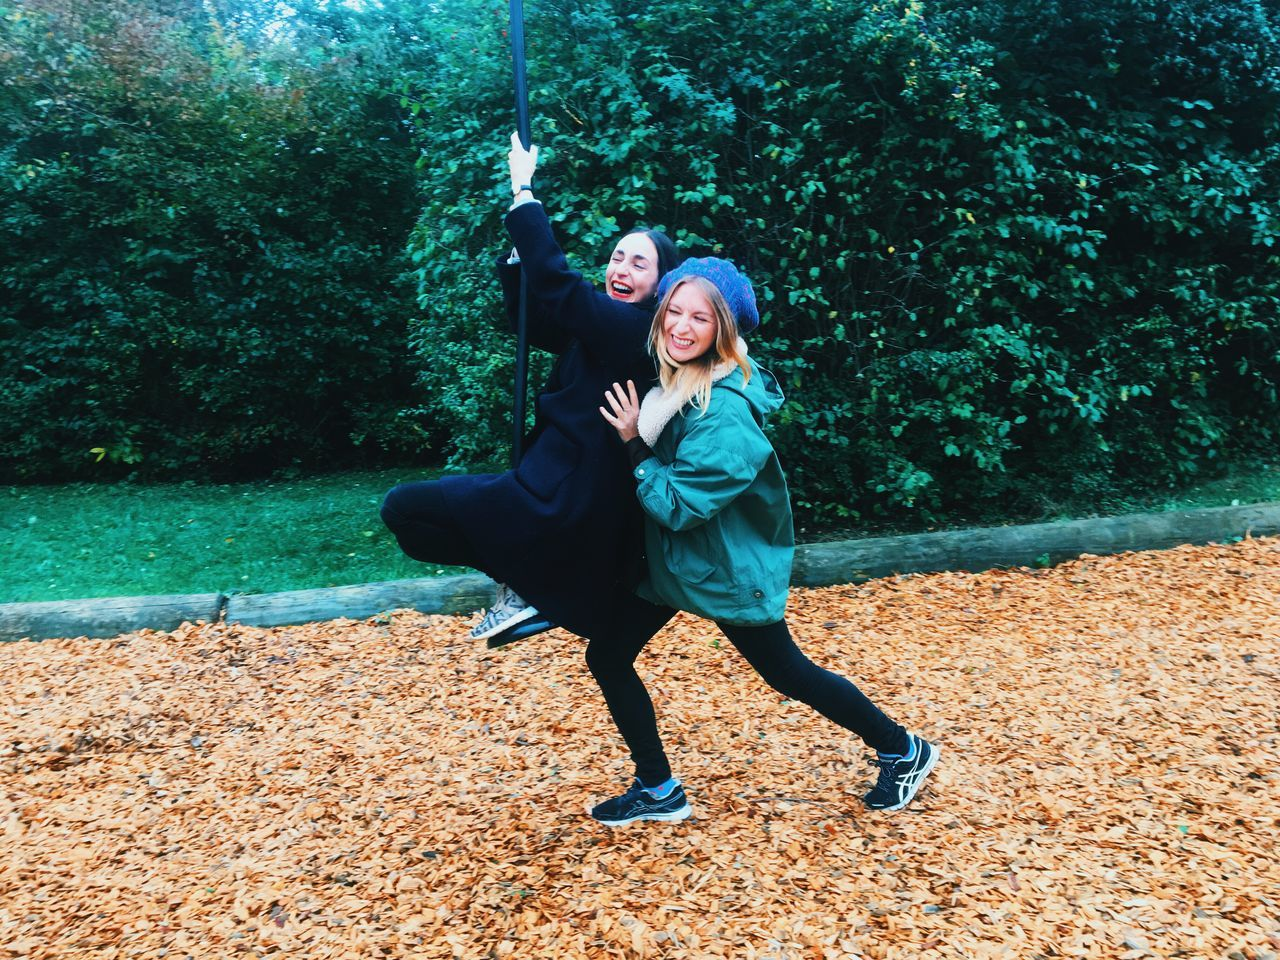 two woman on zip line Full Length Tree Person Lifestyles Young Adult Leisure Activity Young Women Casual Clothing Park - Man Made Space Nature Day Looking At Camera Vacations Outdoors Autumn Smiling Laughing Playground Zip Line Tranquility Carefree Scenics